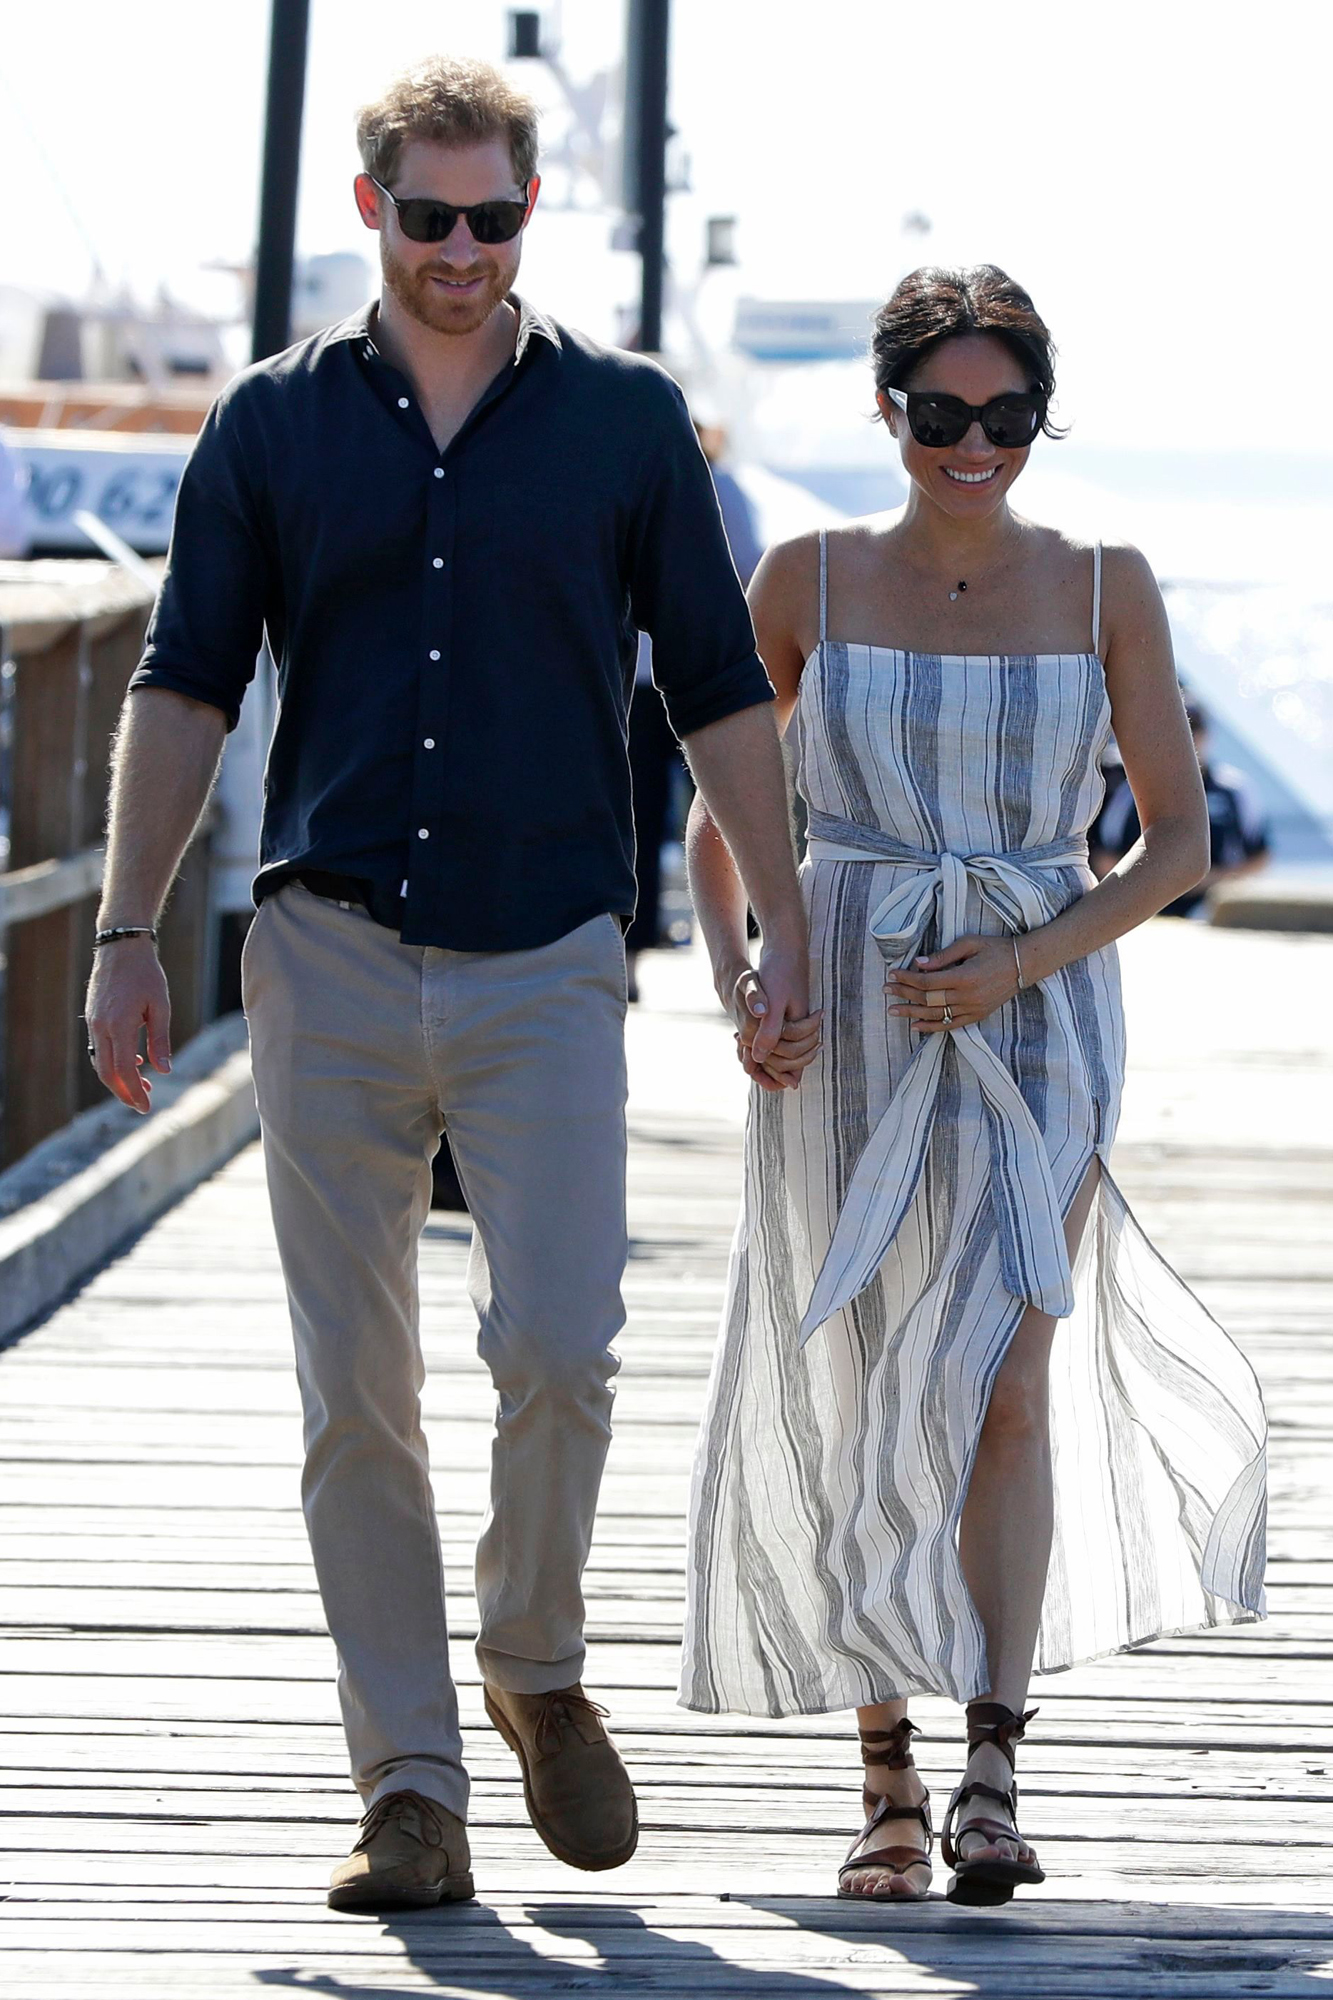 Britain Royals, Fraser Island, Australia - 22 Oct 2018